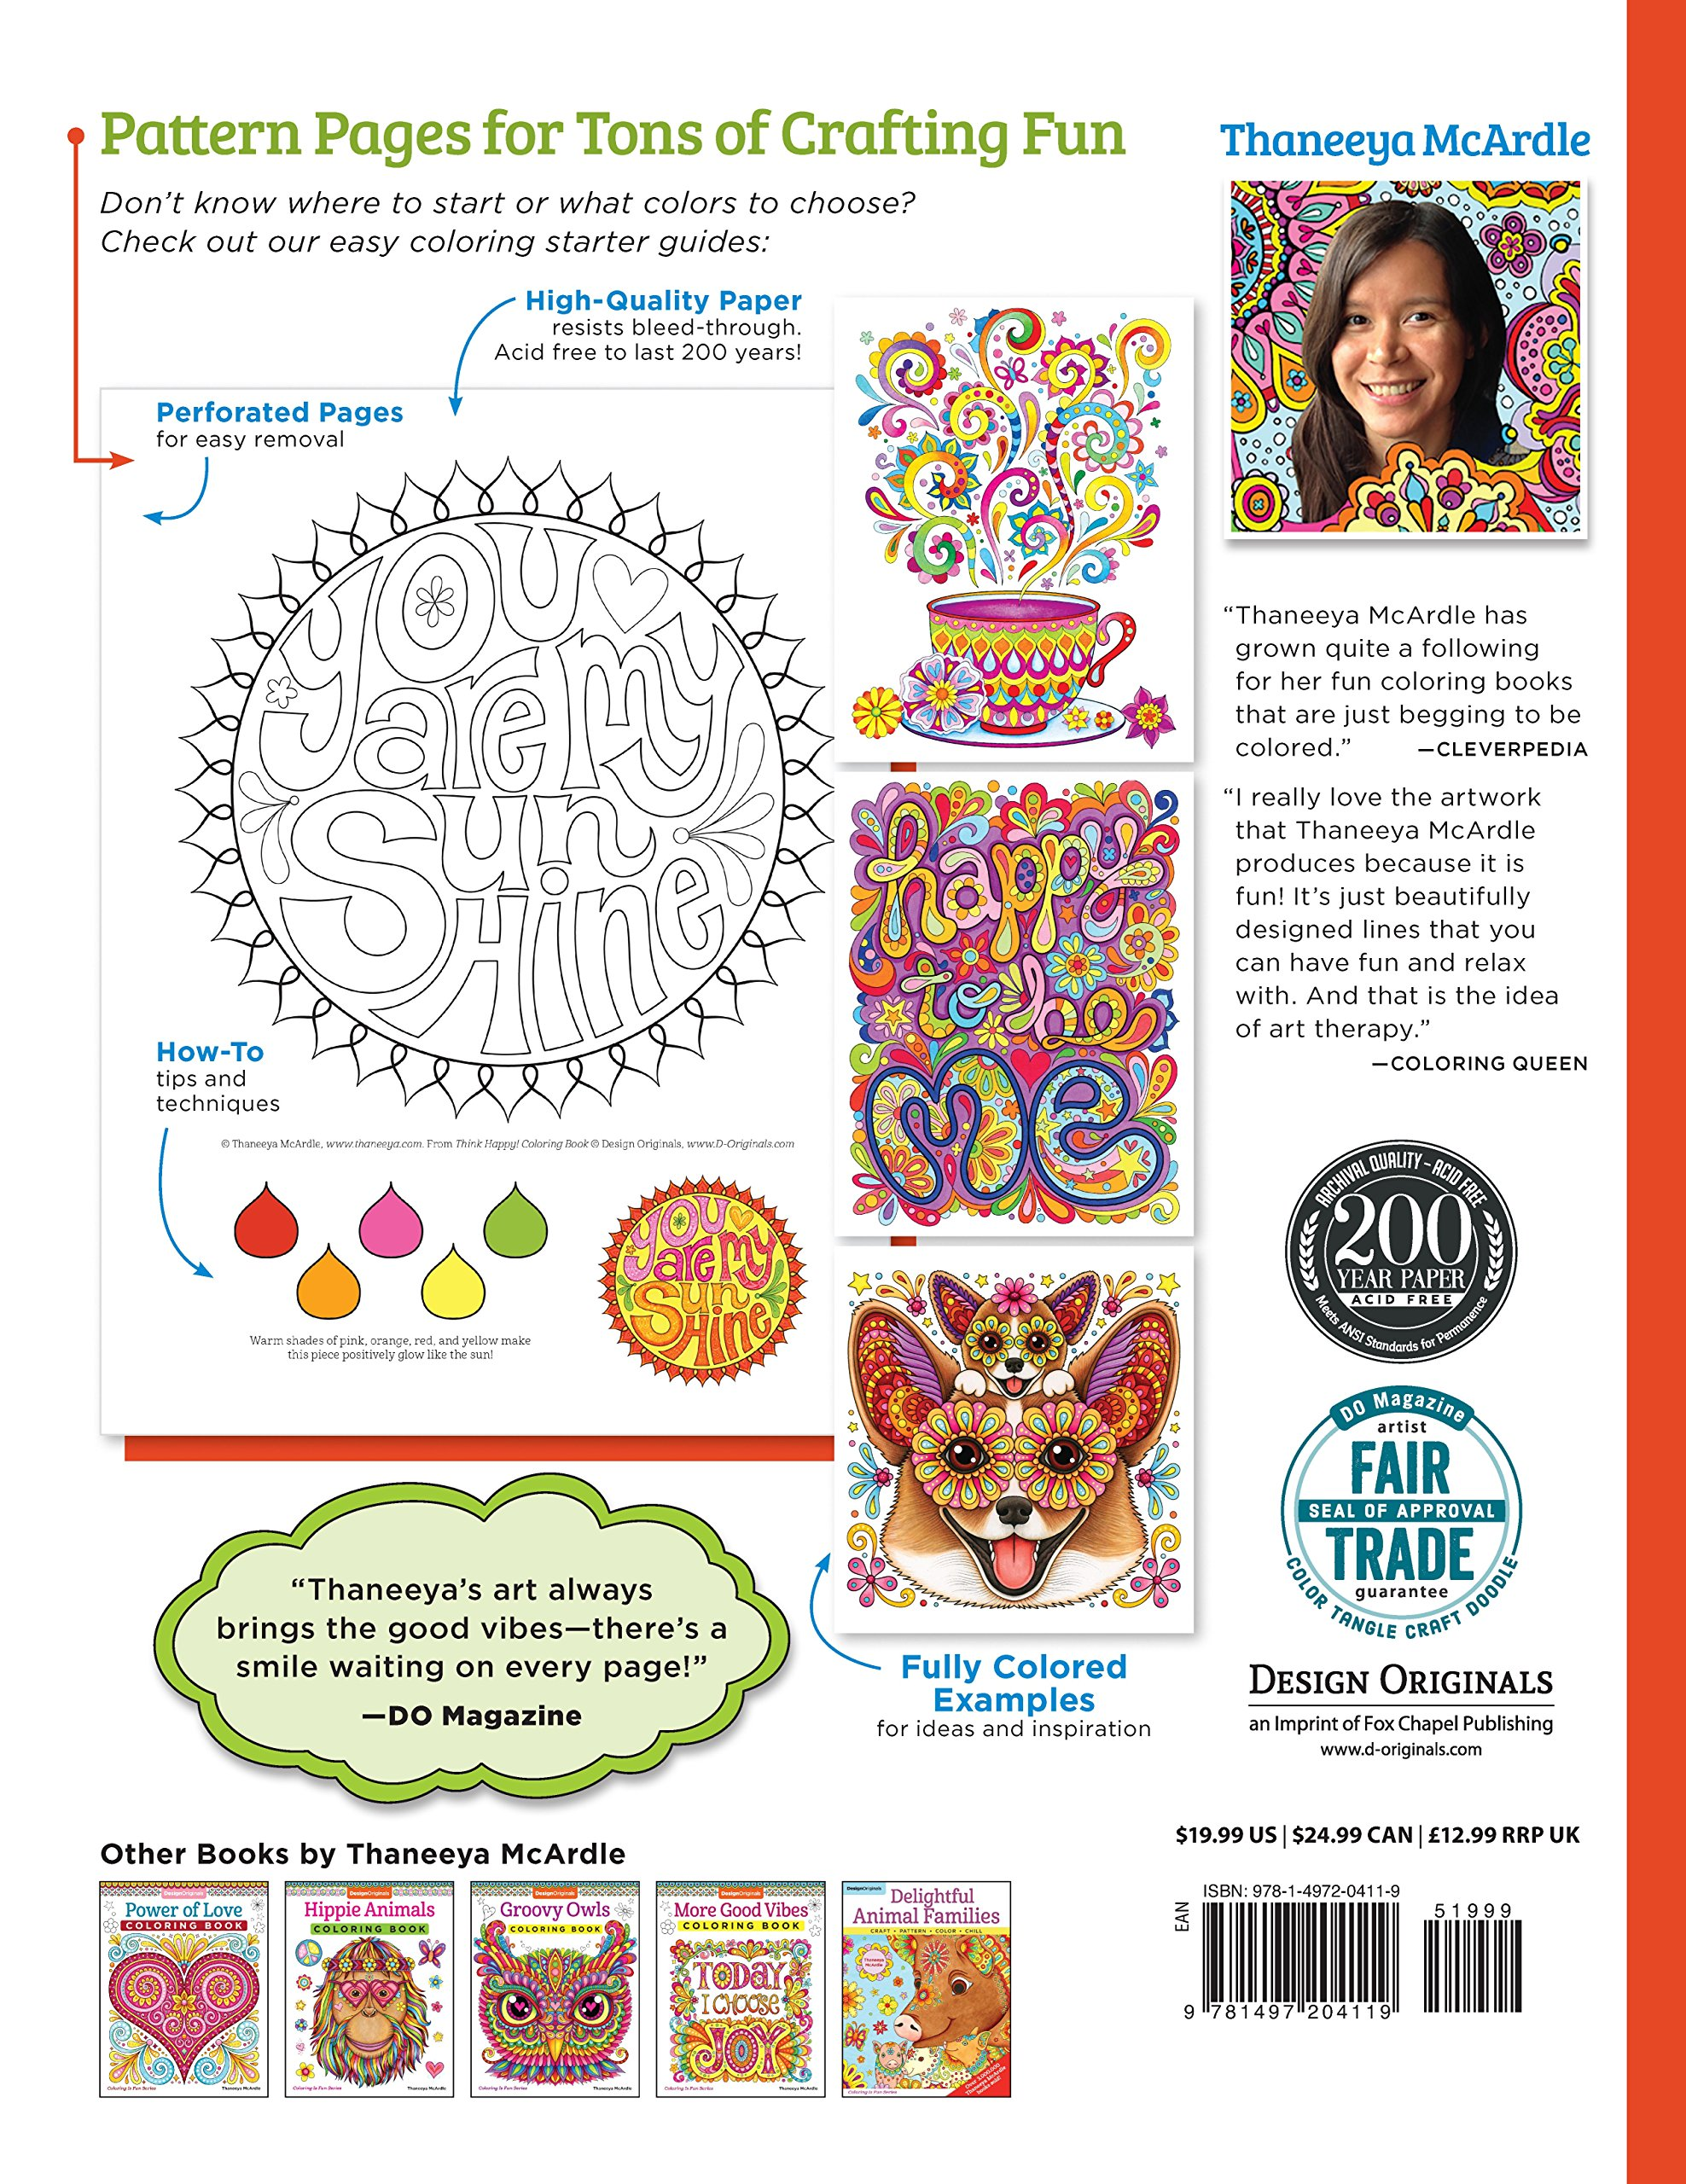 Think Happy! Coloring Book: Craft, Pattern, Color, Chill: Thaneeya McArdle:  9781497204119: Books - Amazon.ca